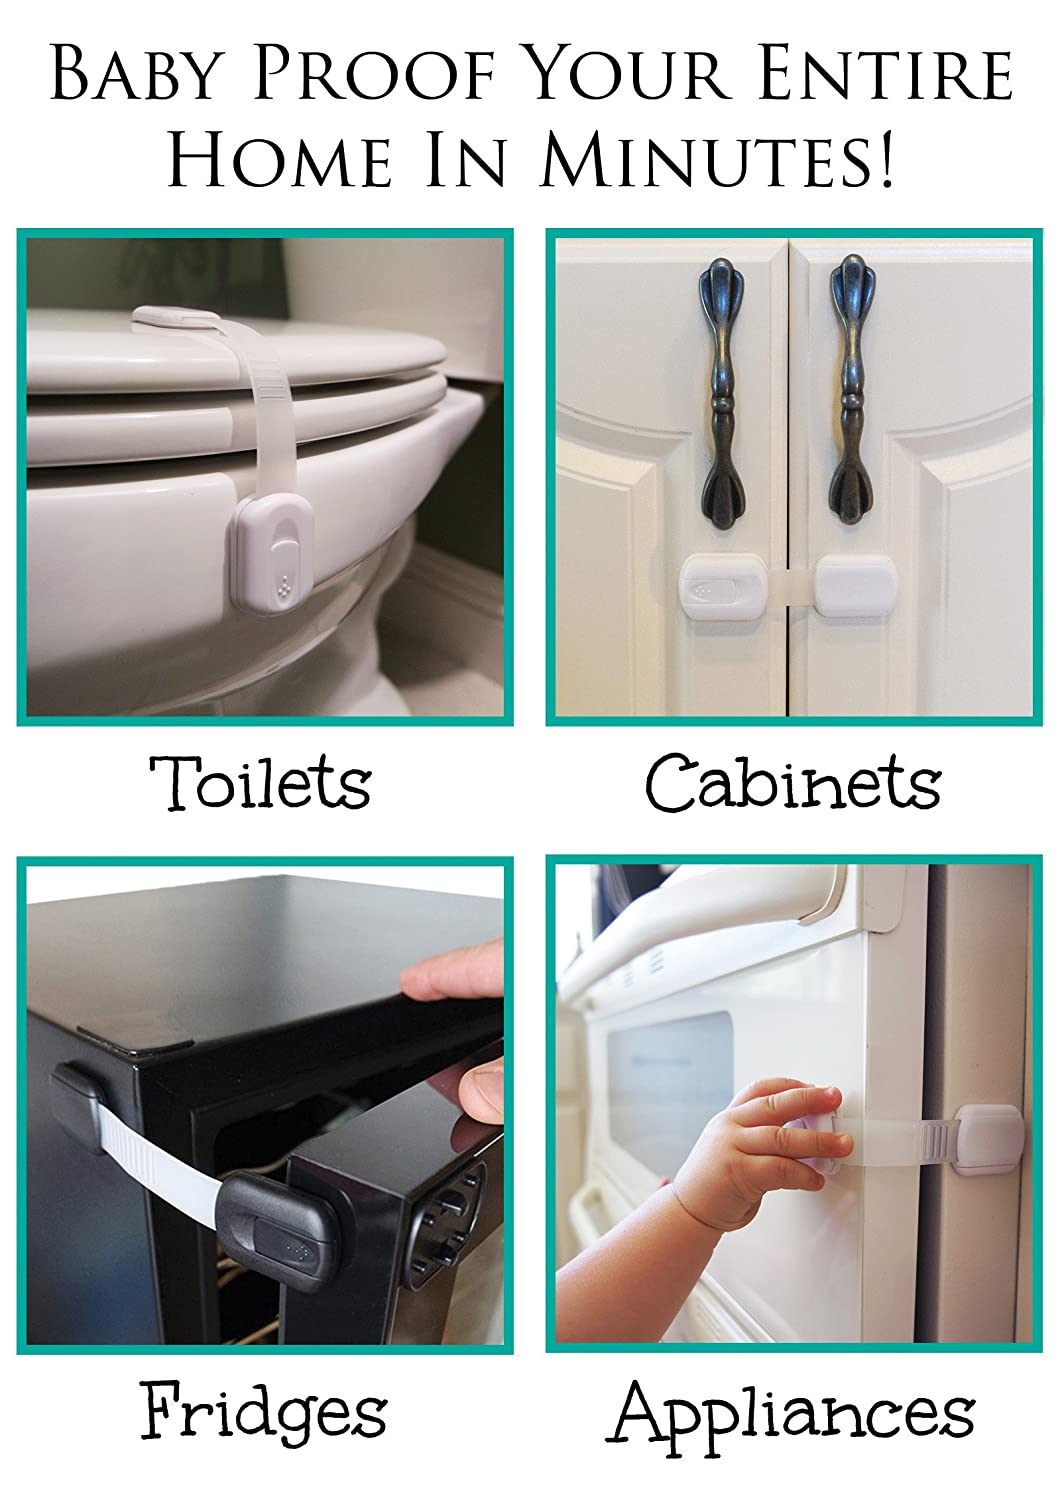 6-Pack Brown Drawers Uses 3M Adhesive with Adjustable Strap and Latch System Baby Safety Locks Fridge and Oven Child Proof Cabinets Appliances Toilet Seat Tools Not Required